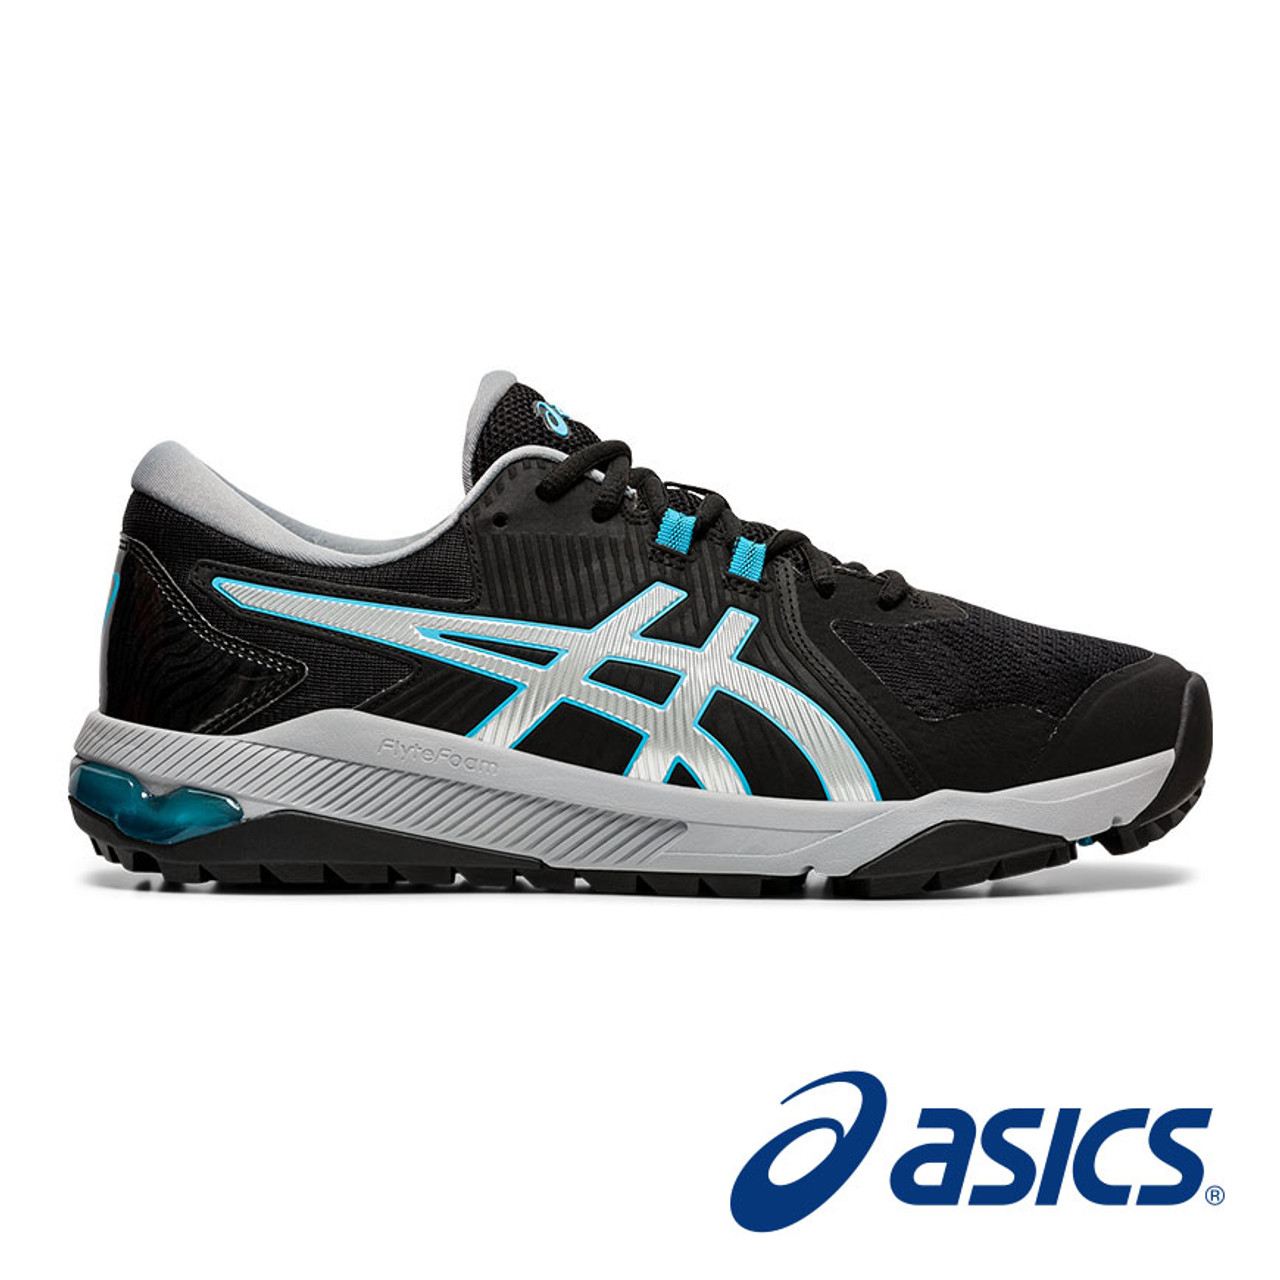 Asics Gel-Course Glide Golf Shoes - Black / Blue / Silver